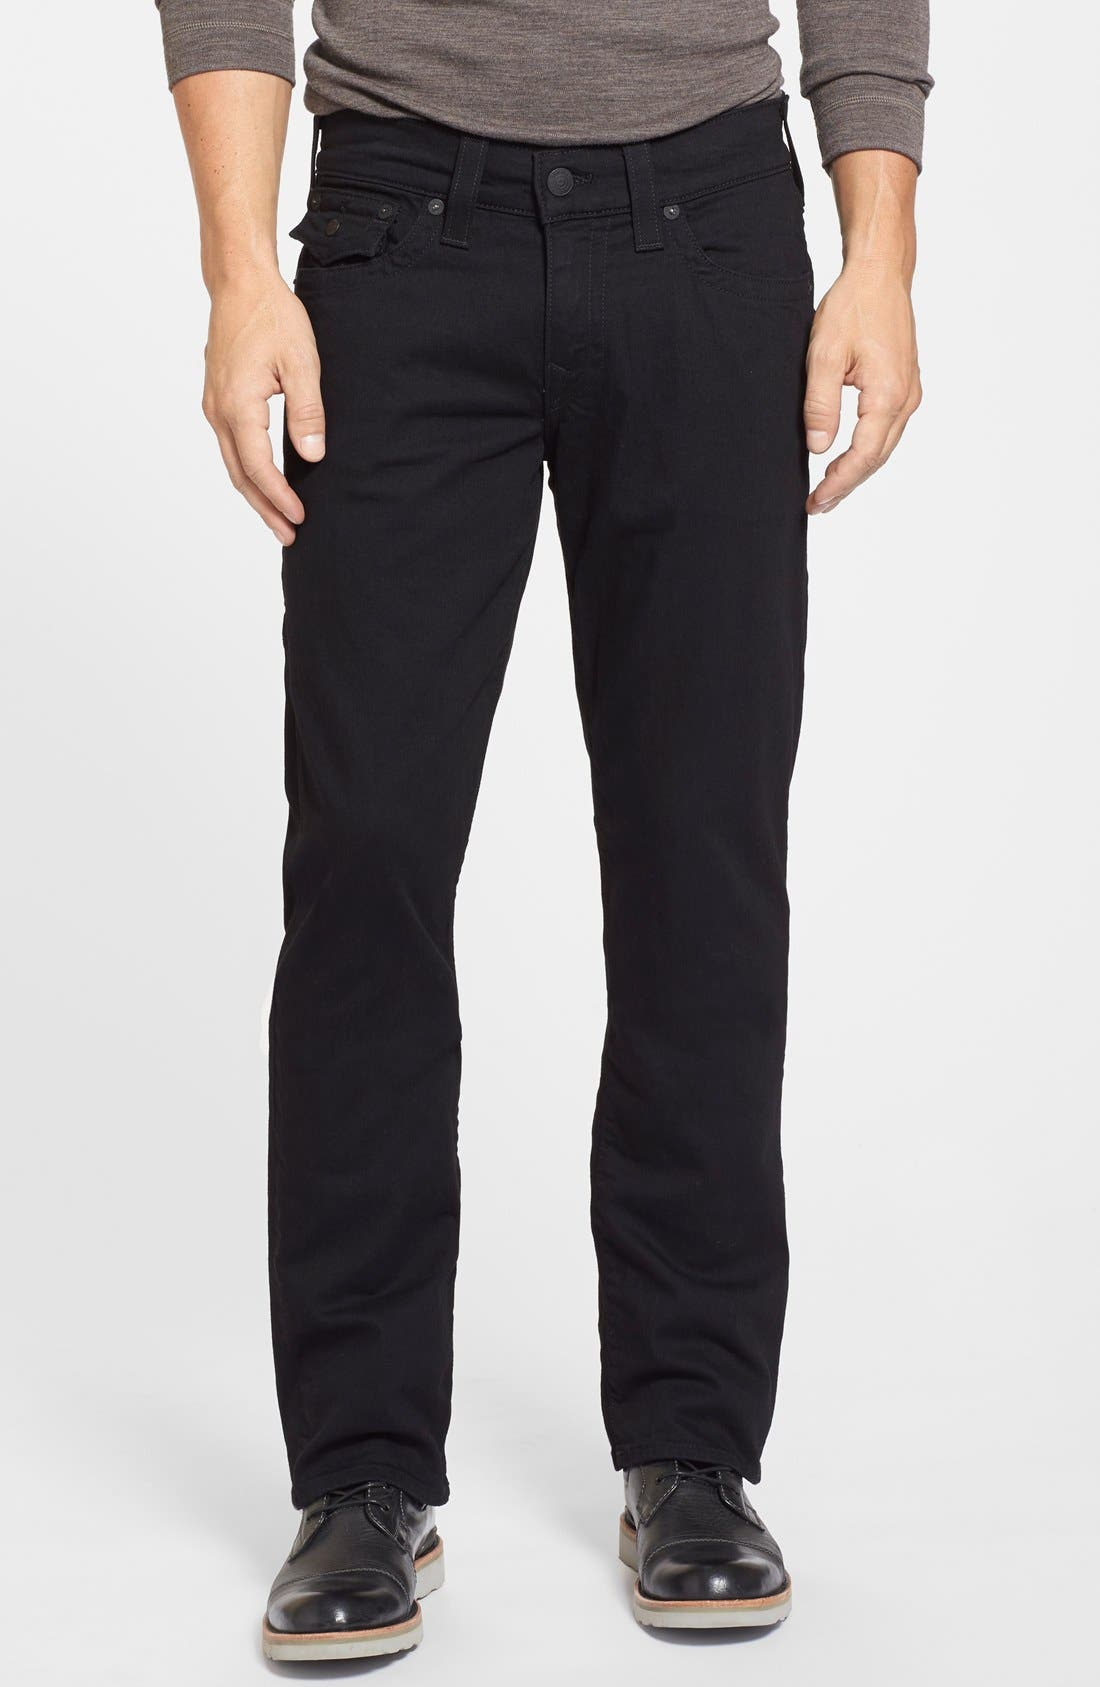 True Religion Brand Jeans Ricky Relaxed Fit Jeans (Midnight Black)